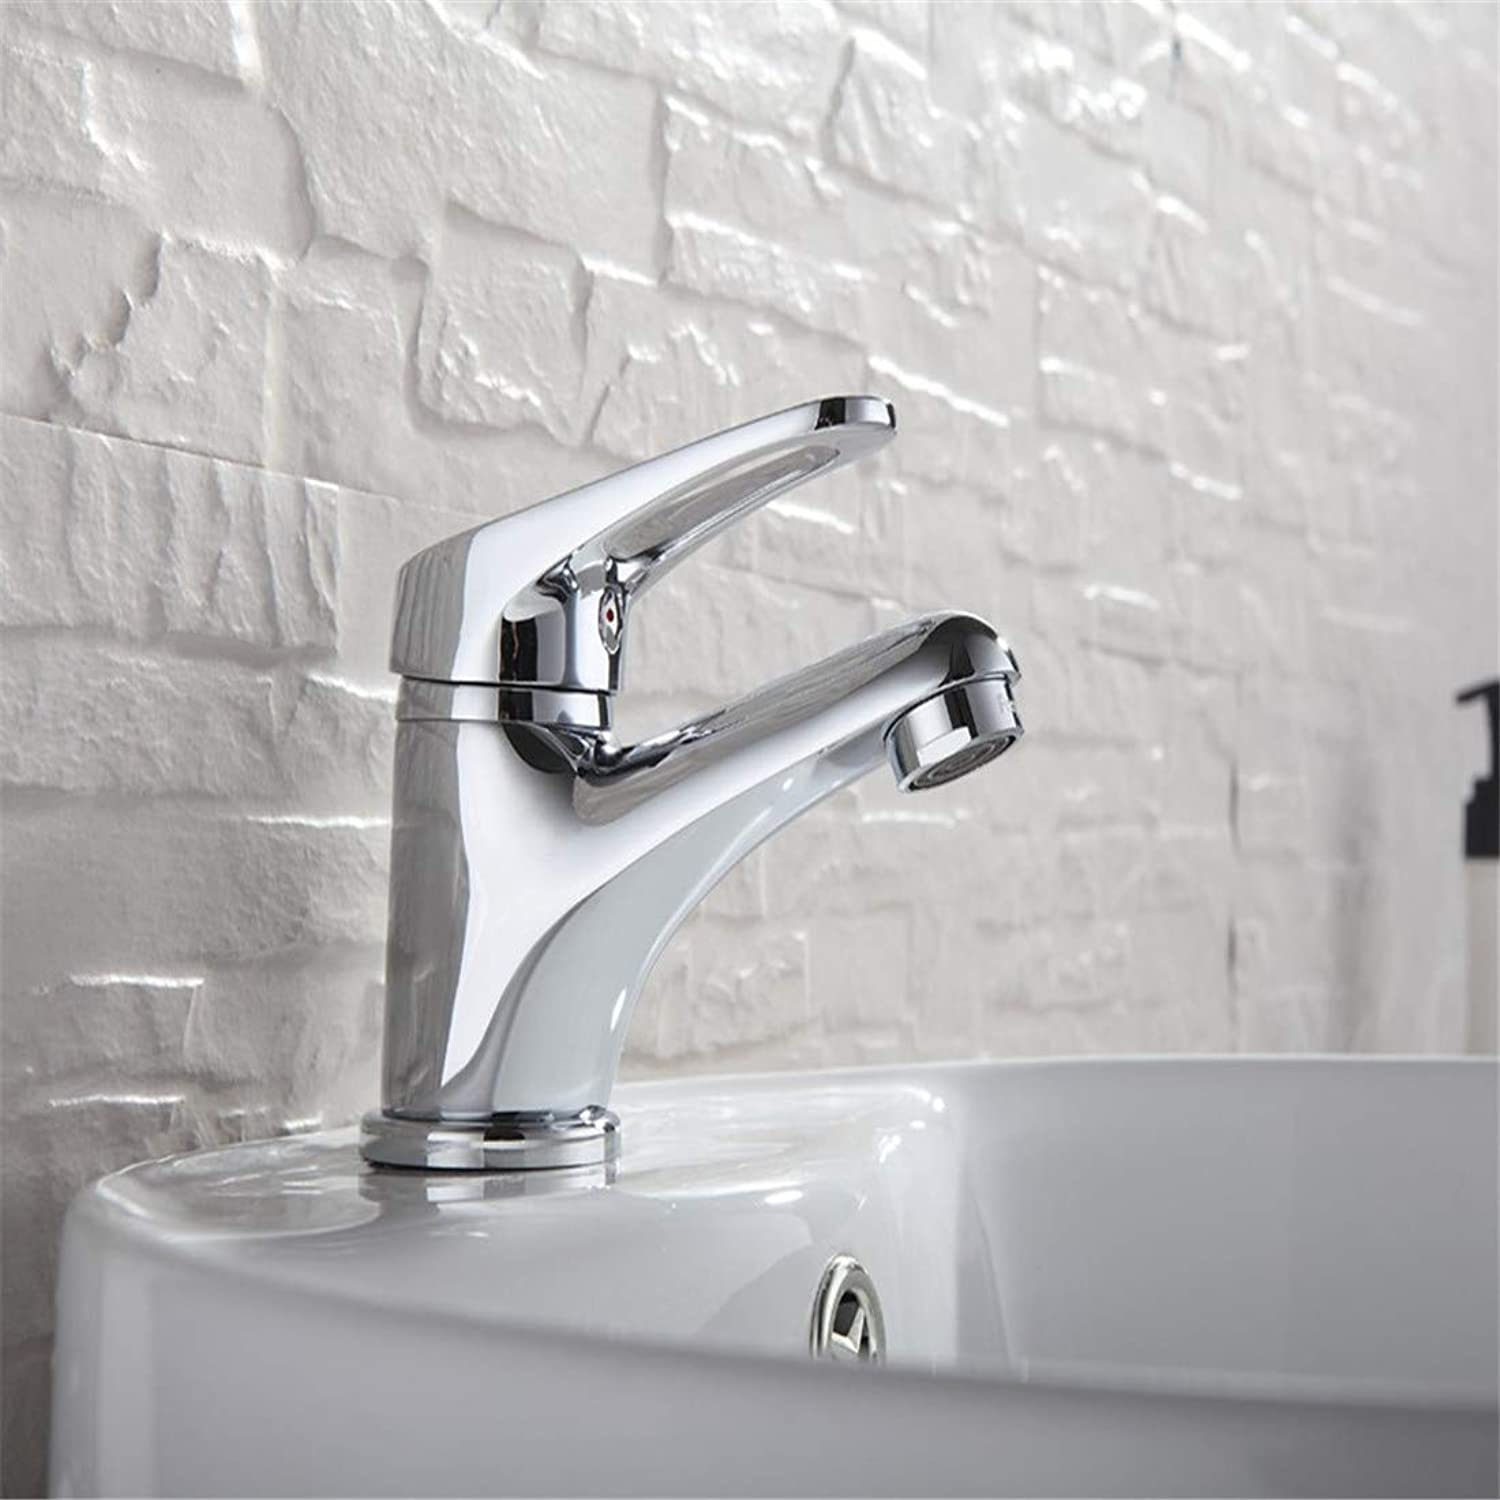 360 Degree redating Solid Brasswhite Faucets Home Bathroom Faucet Basin Mixer Tap Cold-Hot